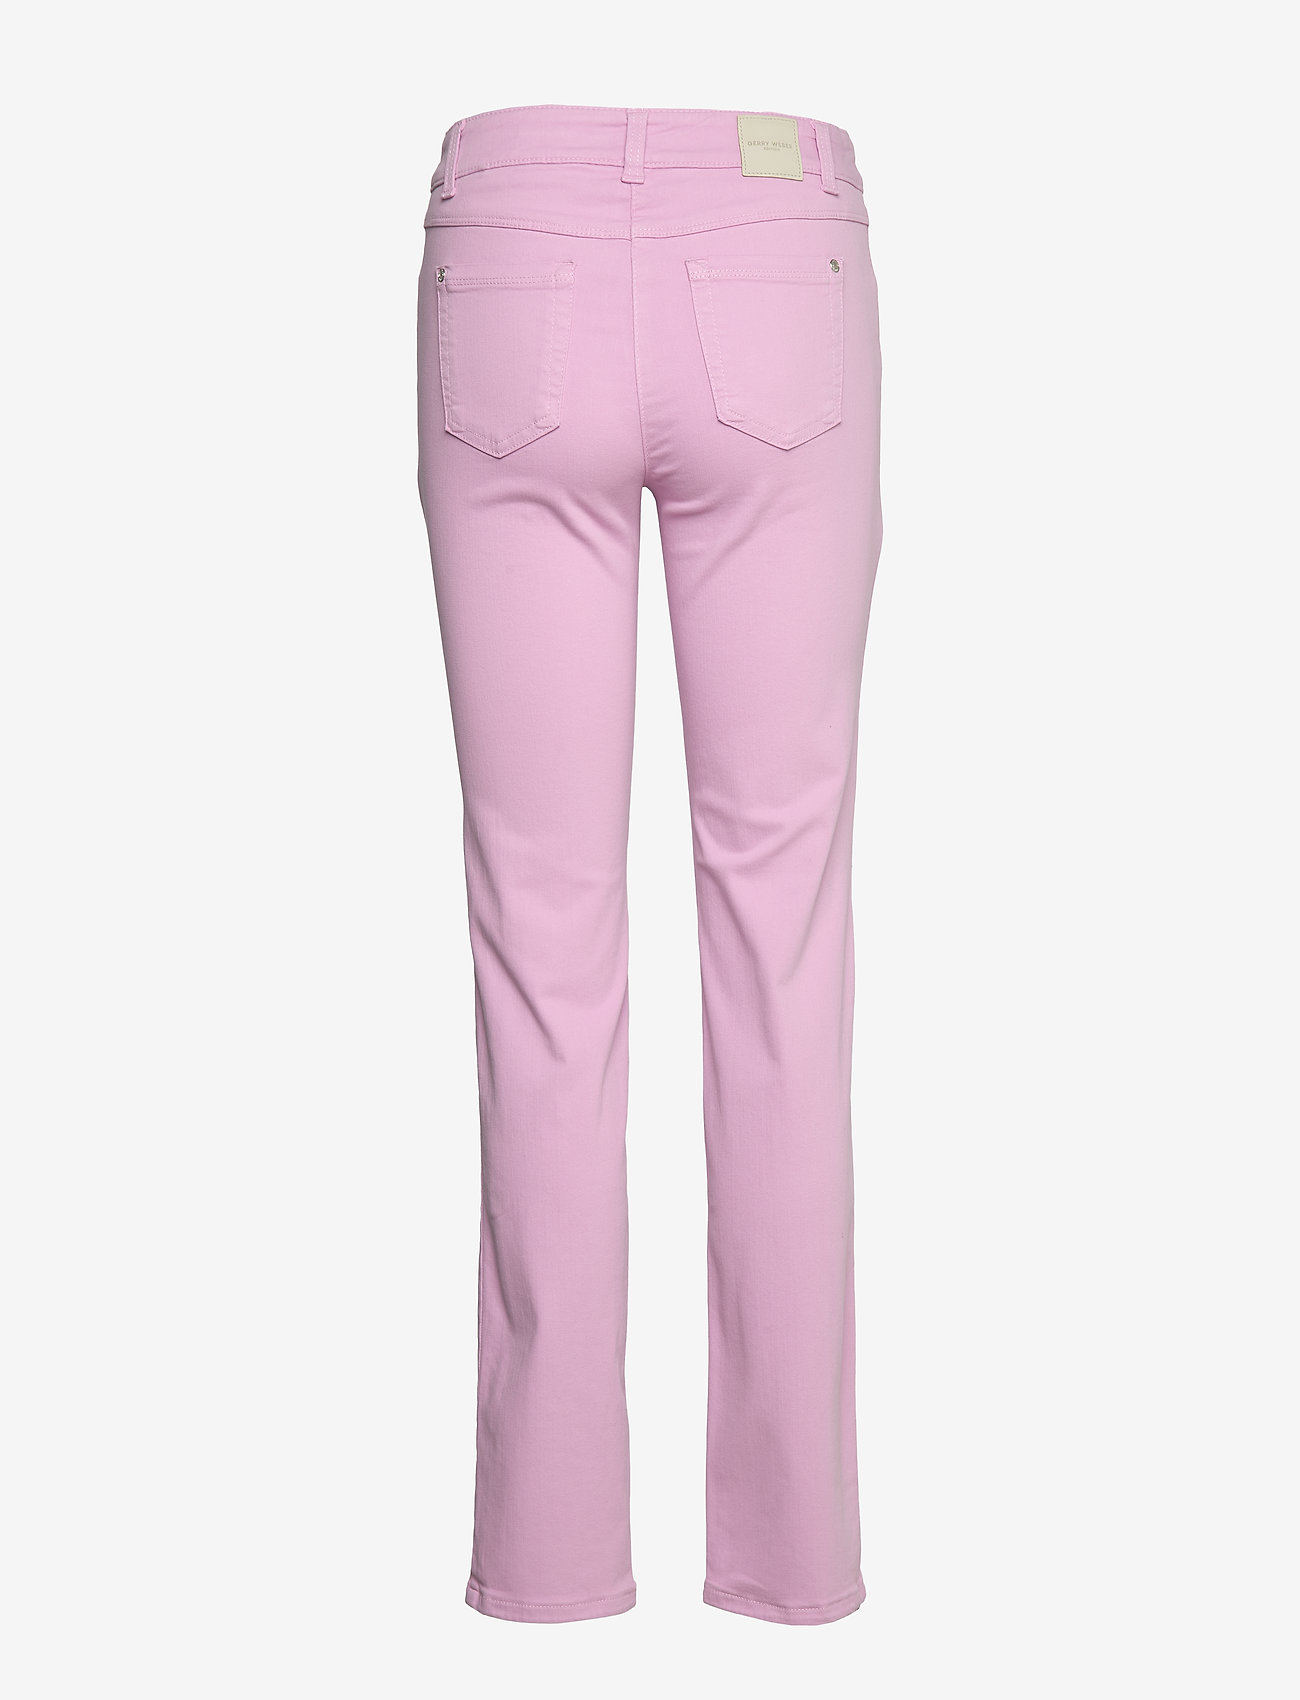 Gerry Weber Edition - JEANS LONG - straight jeans - pastel lavender - 1